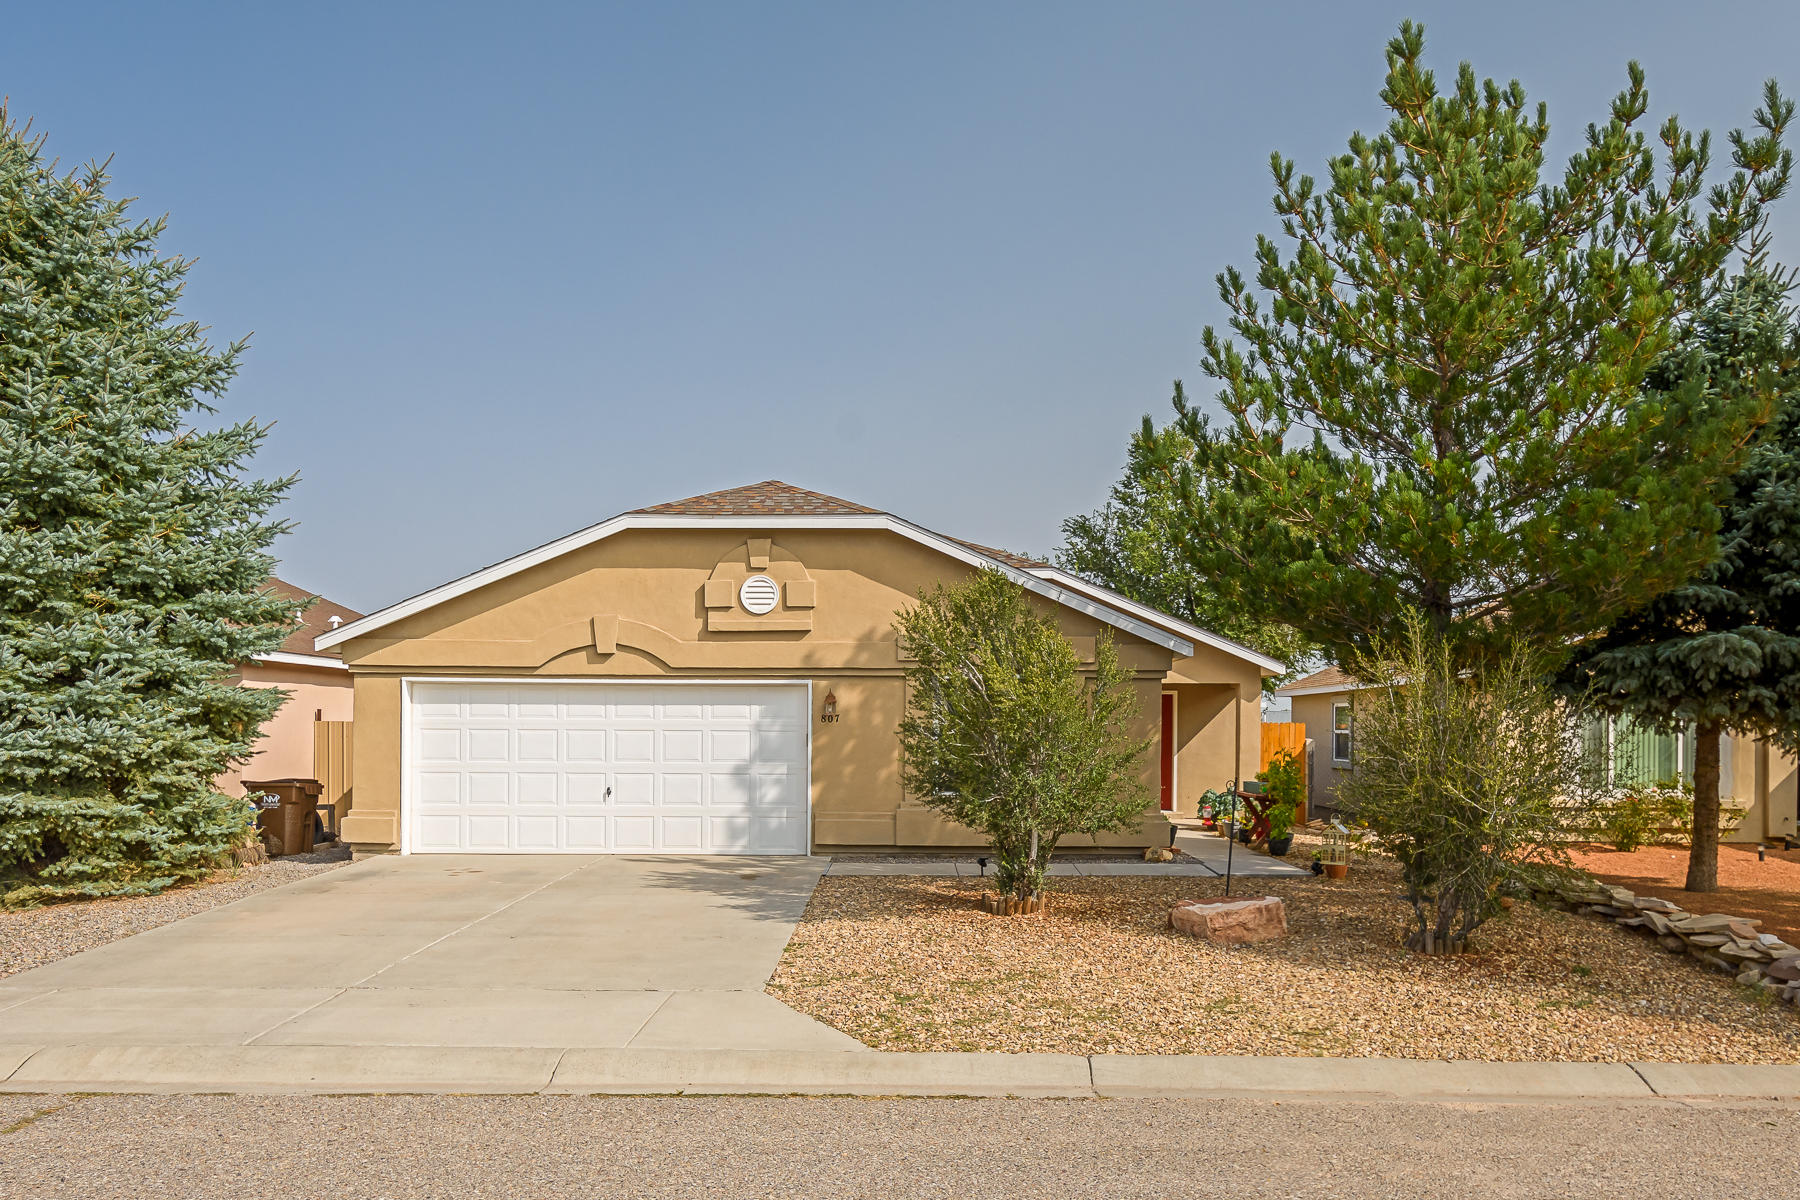 Immaculate Home 30 Minutes From Albuquerque. This House Is Absolutely Spotless! Stainless Steel Kitchen Appliances. Refrigerated Air Conditioning. Vaulted Ceilings. Thermal Double Pane Windows. Finished Garage. Schedule Your Showing Today! This Is A Great Place To Call Home!